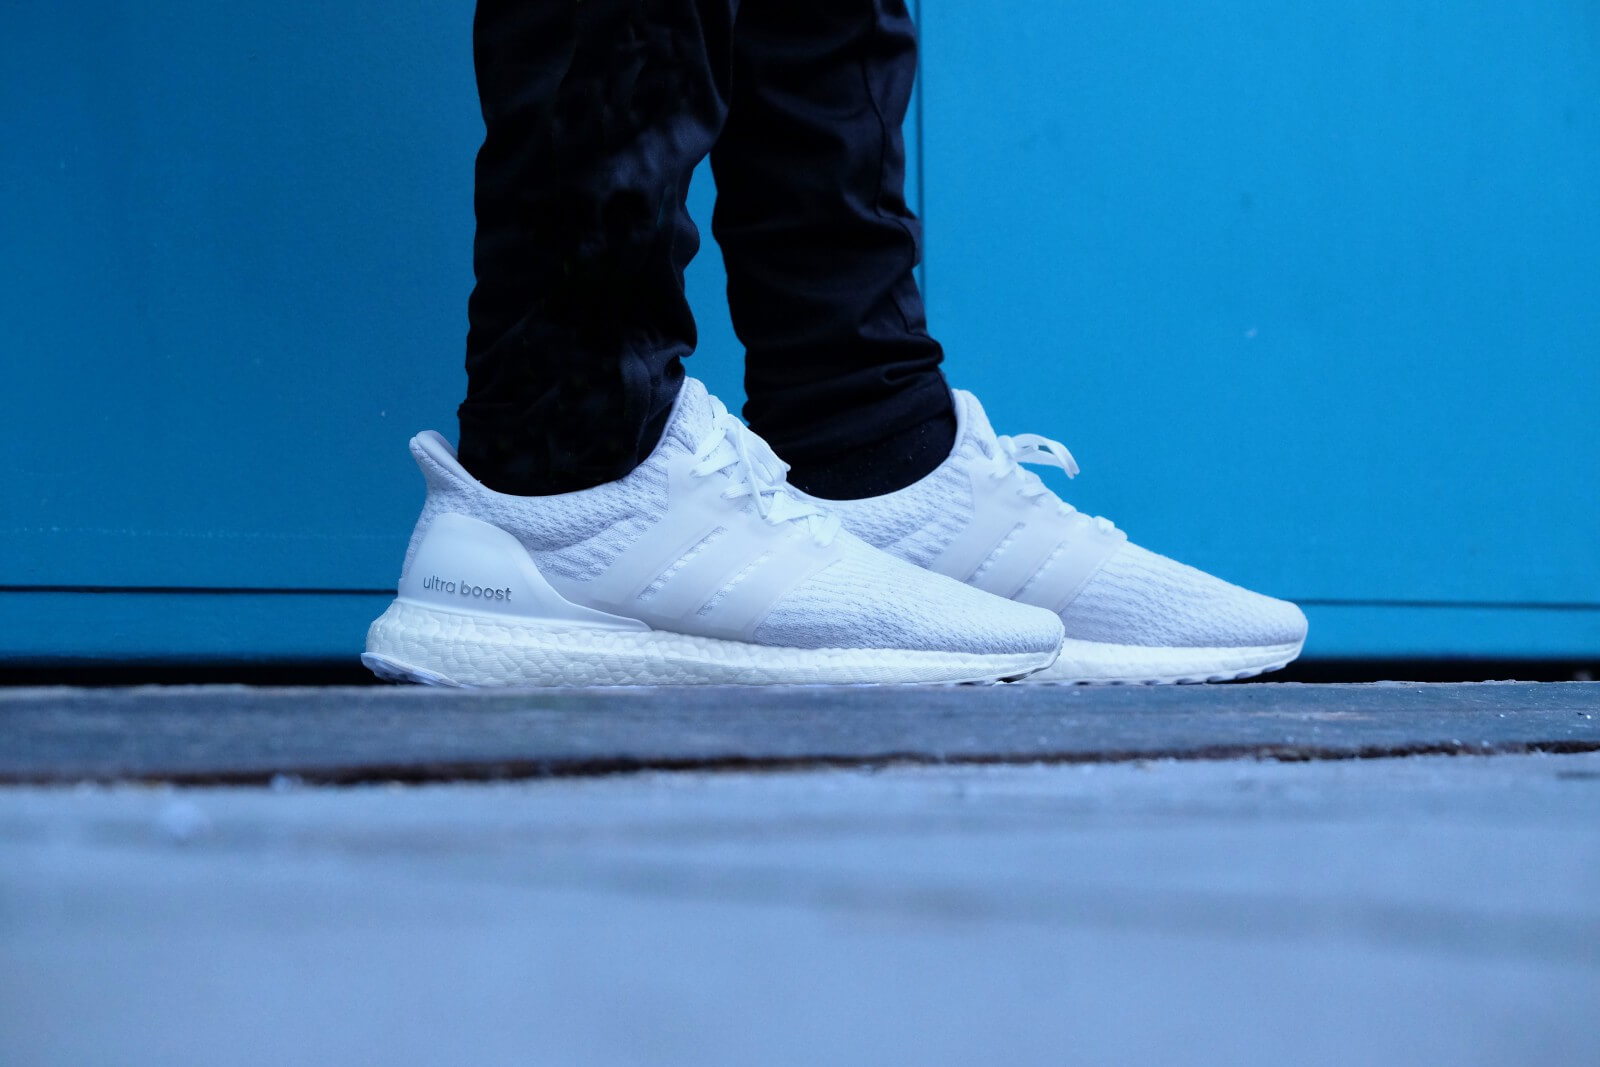 FIRST LOOK: adidas Ultra Boost Triple White 3.0 Ballislife